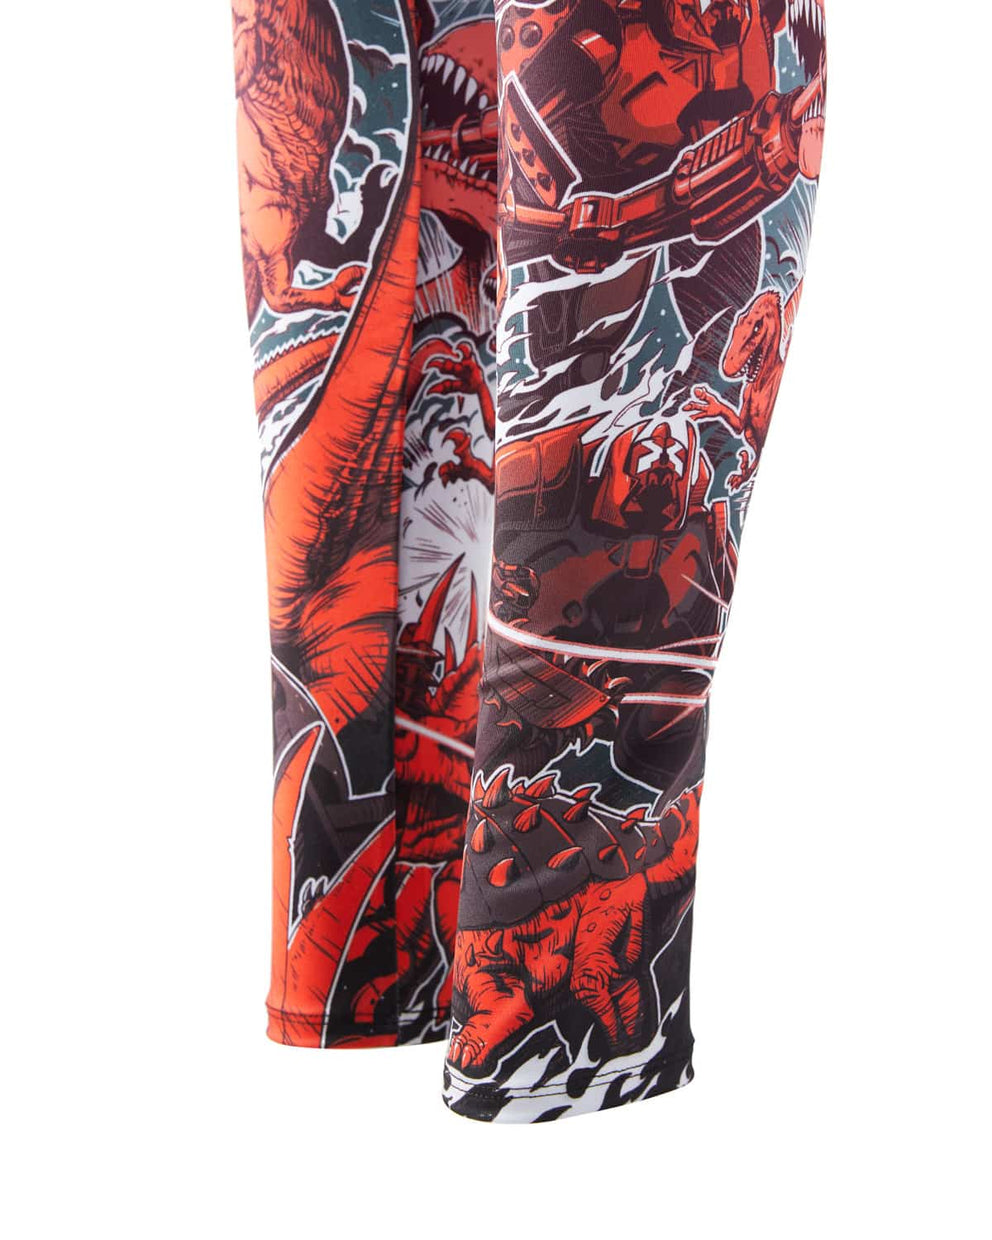 Excision 'Dino vs. Robot' Leggings - Red